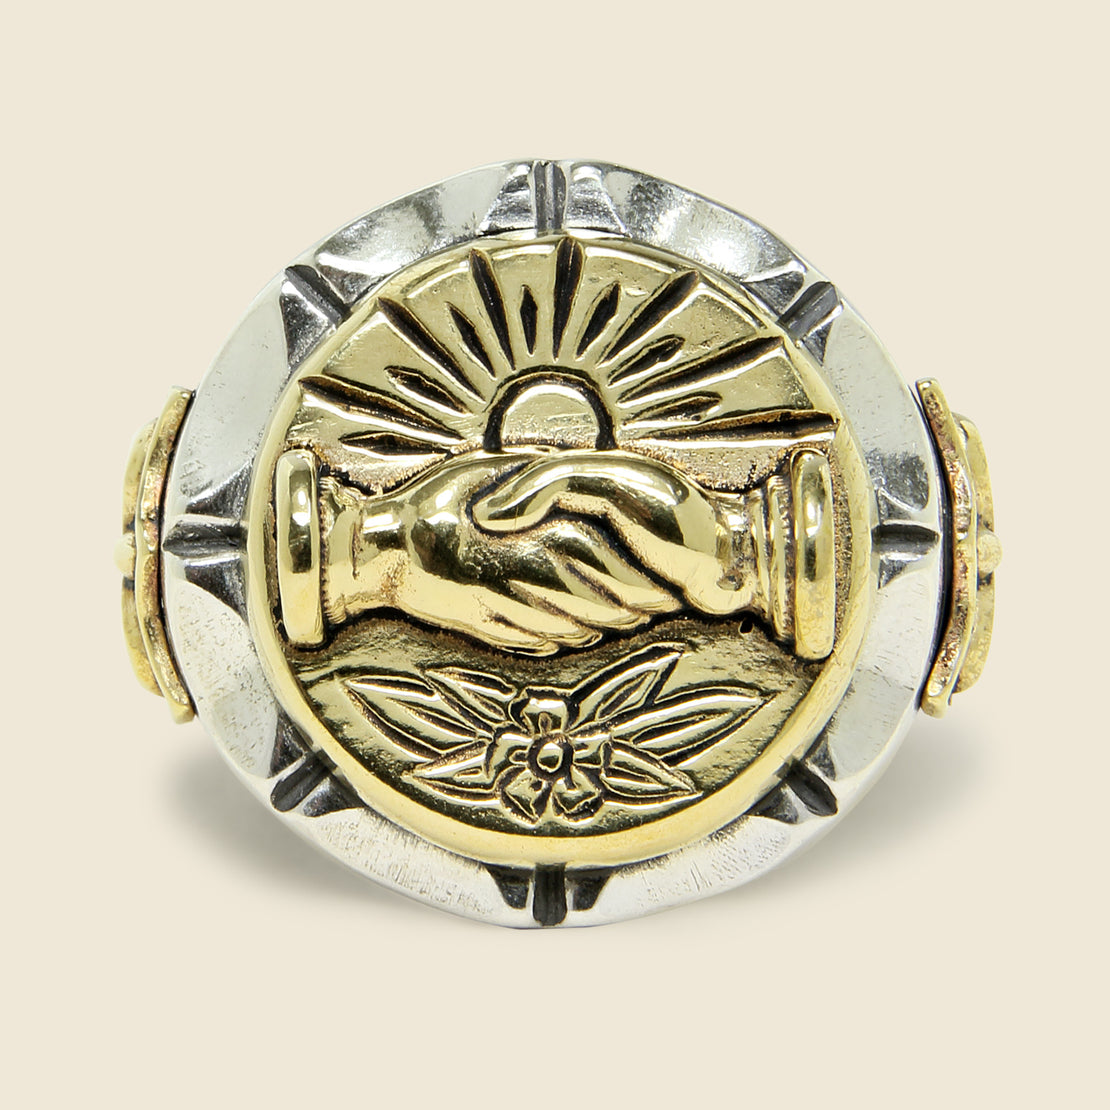 Fellowship Souvenir Ring - Silver/Brass